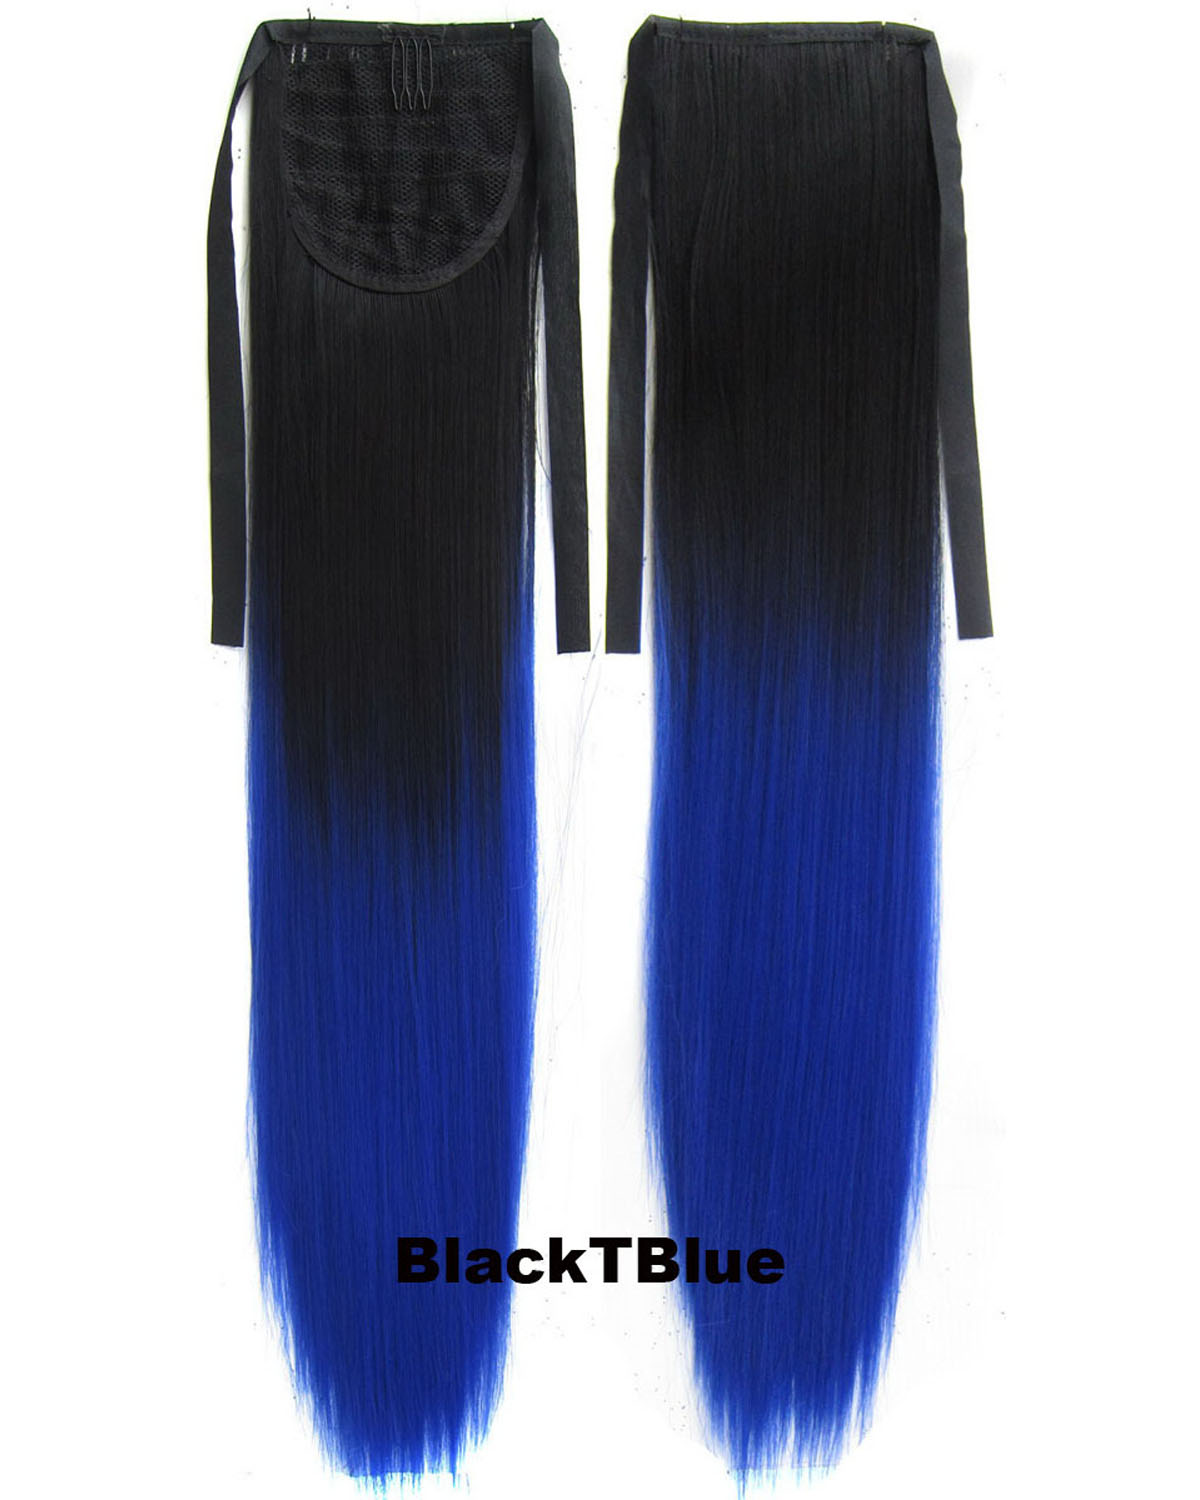 22 Inch Lady Attractive Straight Lace/Ribbon Synthetic Hair Ponytail BlackTBlue Ombre